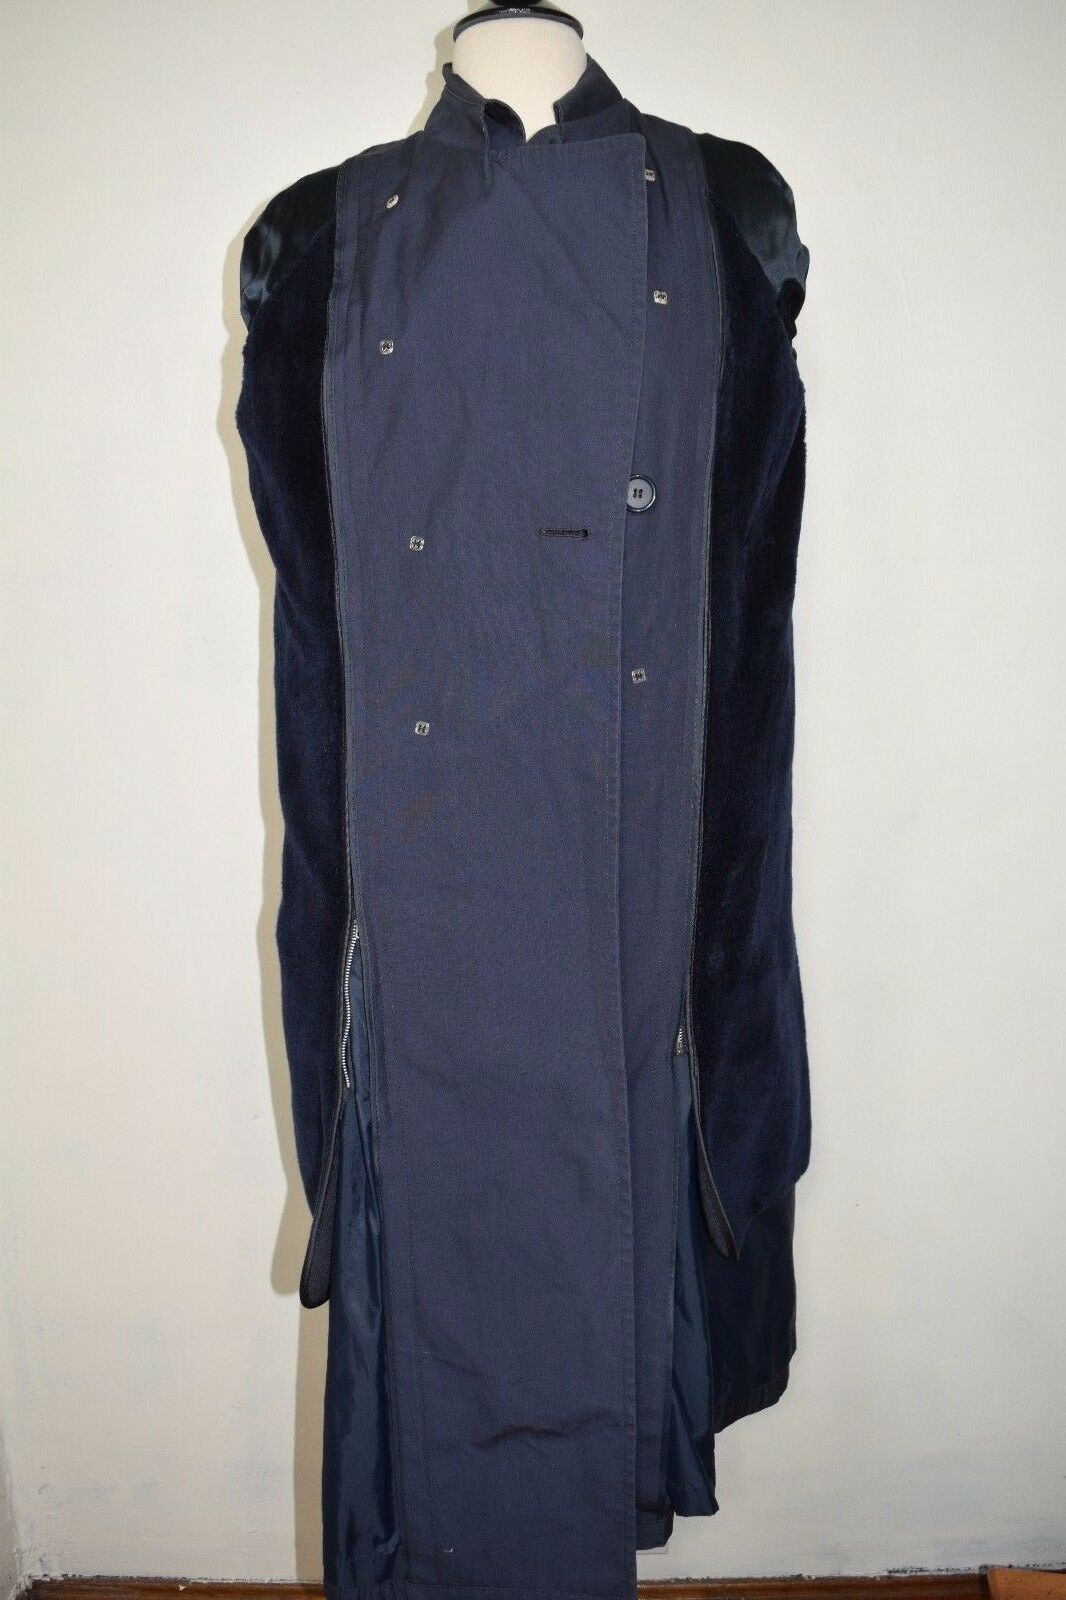 DSCP Defender Collection Trench Rain Coat Coat Coat Navy bluee Military Fleece Lining Sz 6R f70a96